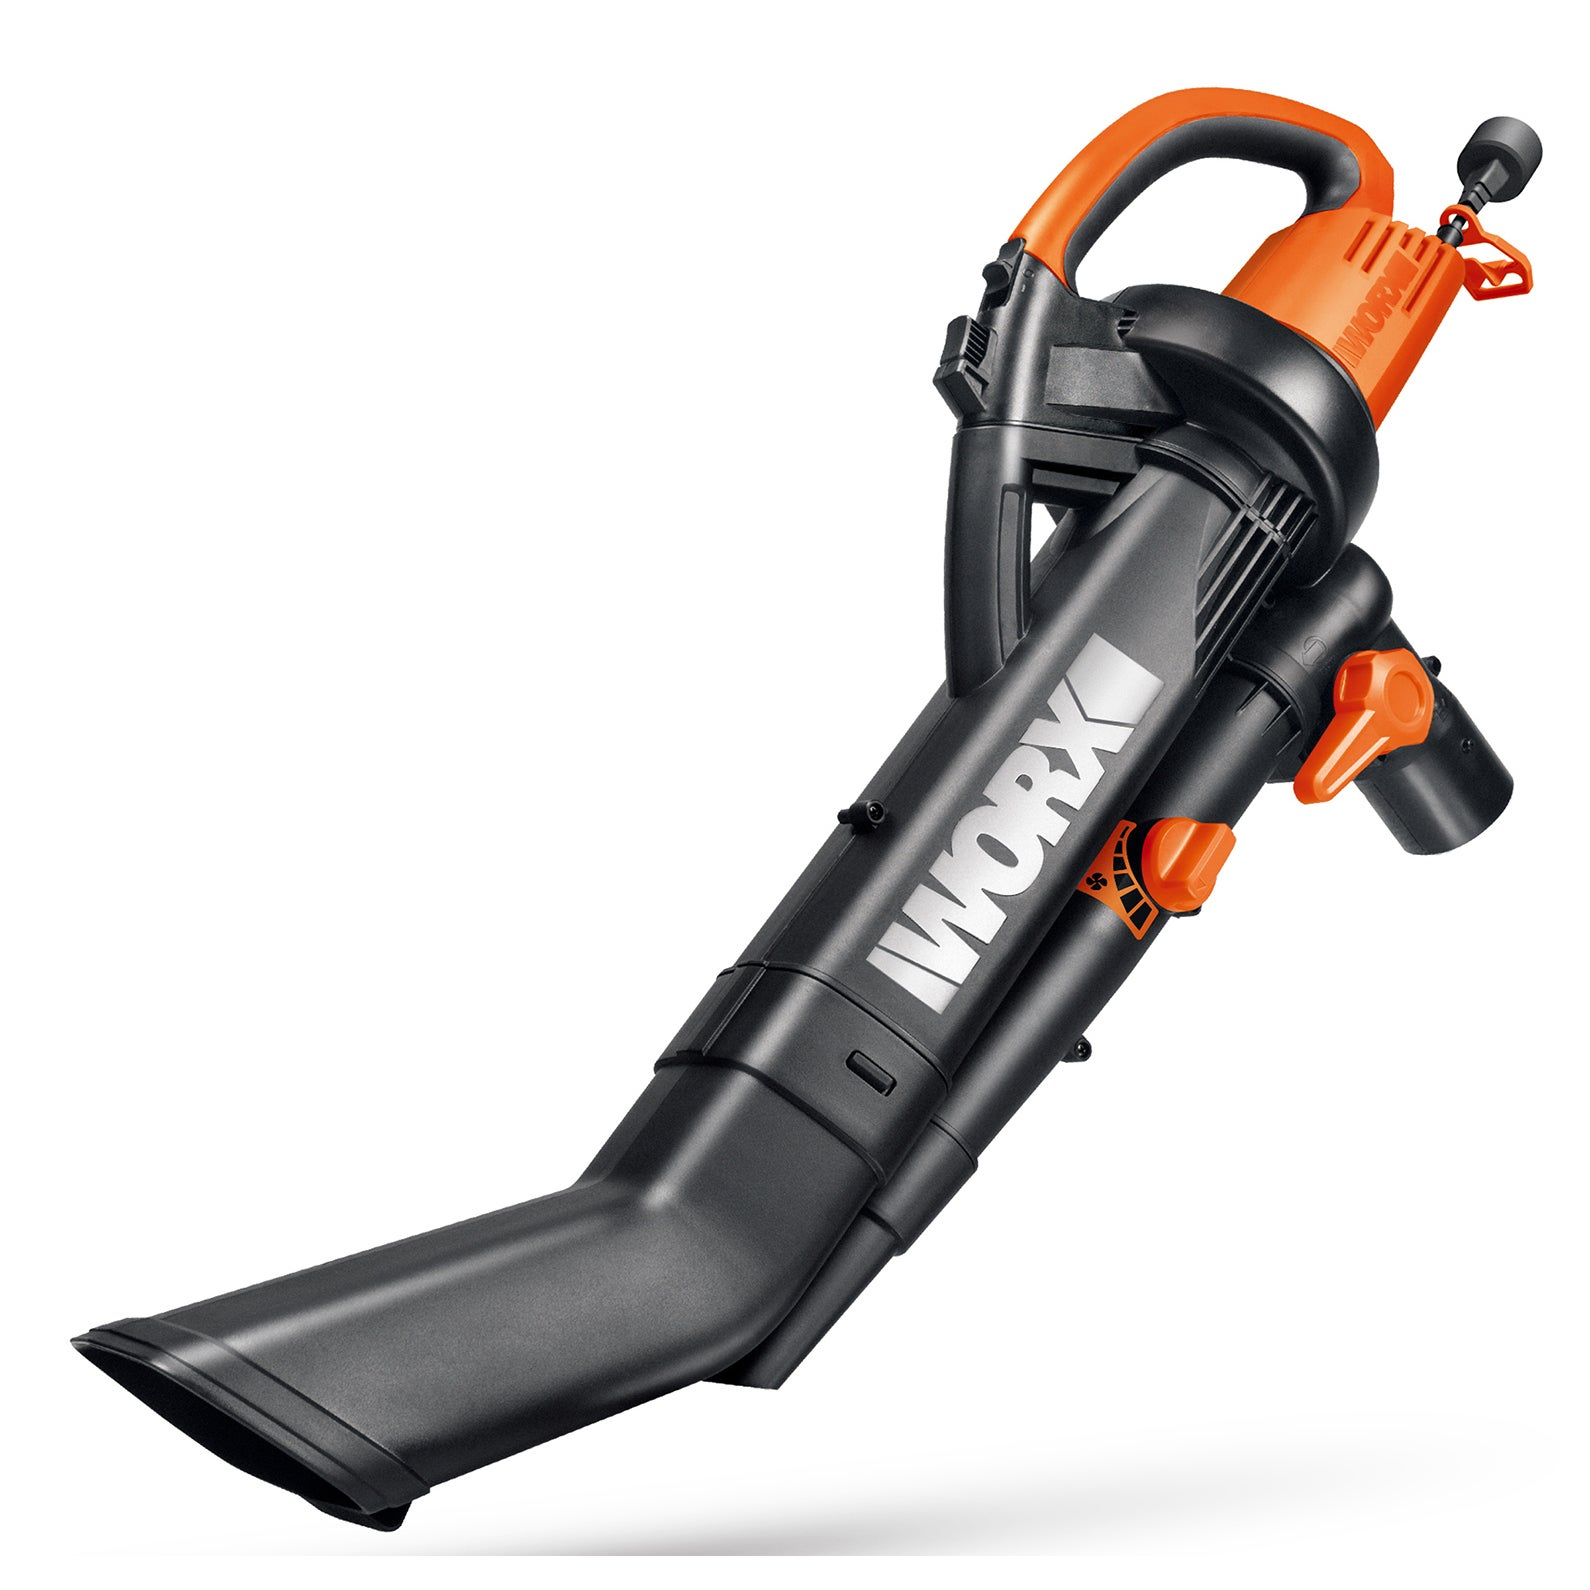 WORX WG505 12 Amp Tri Vac All-In-One Electric Blower, Mul...